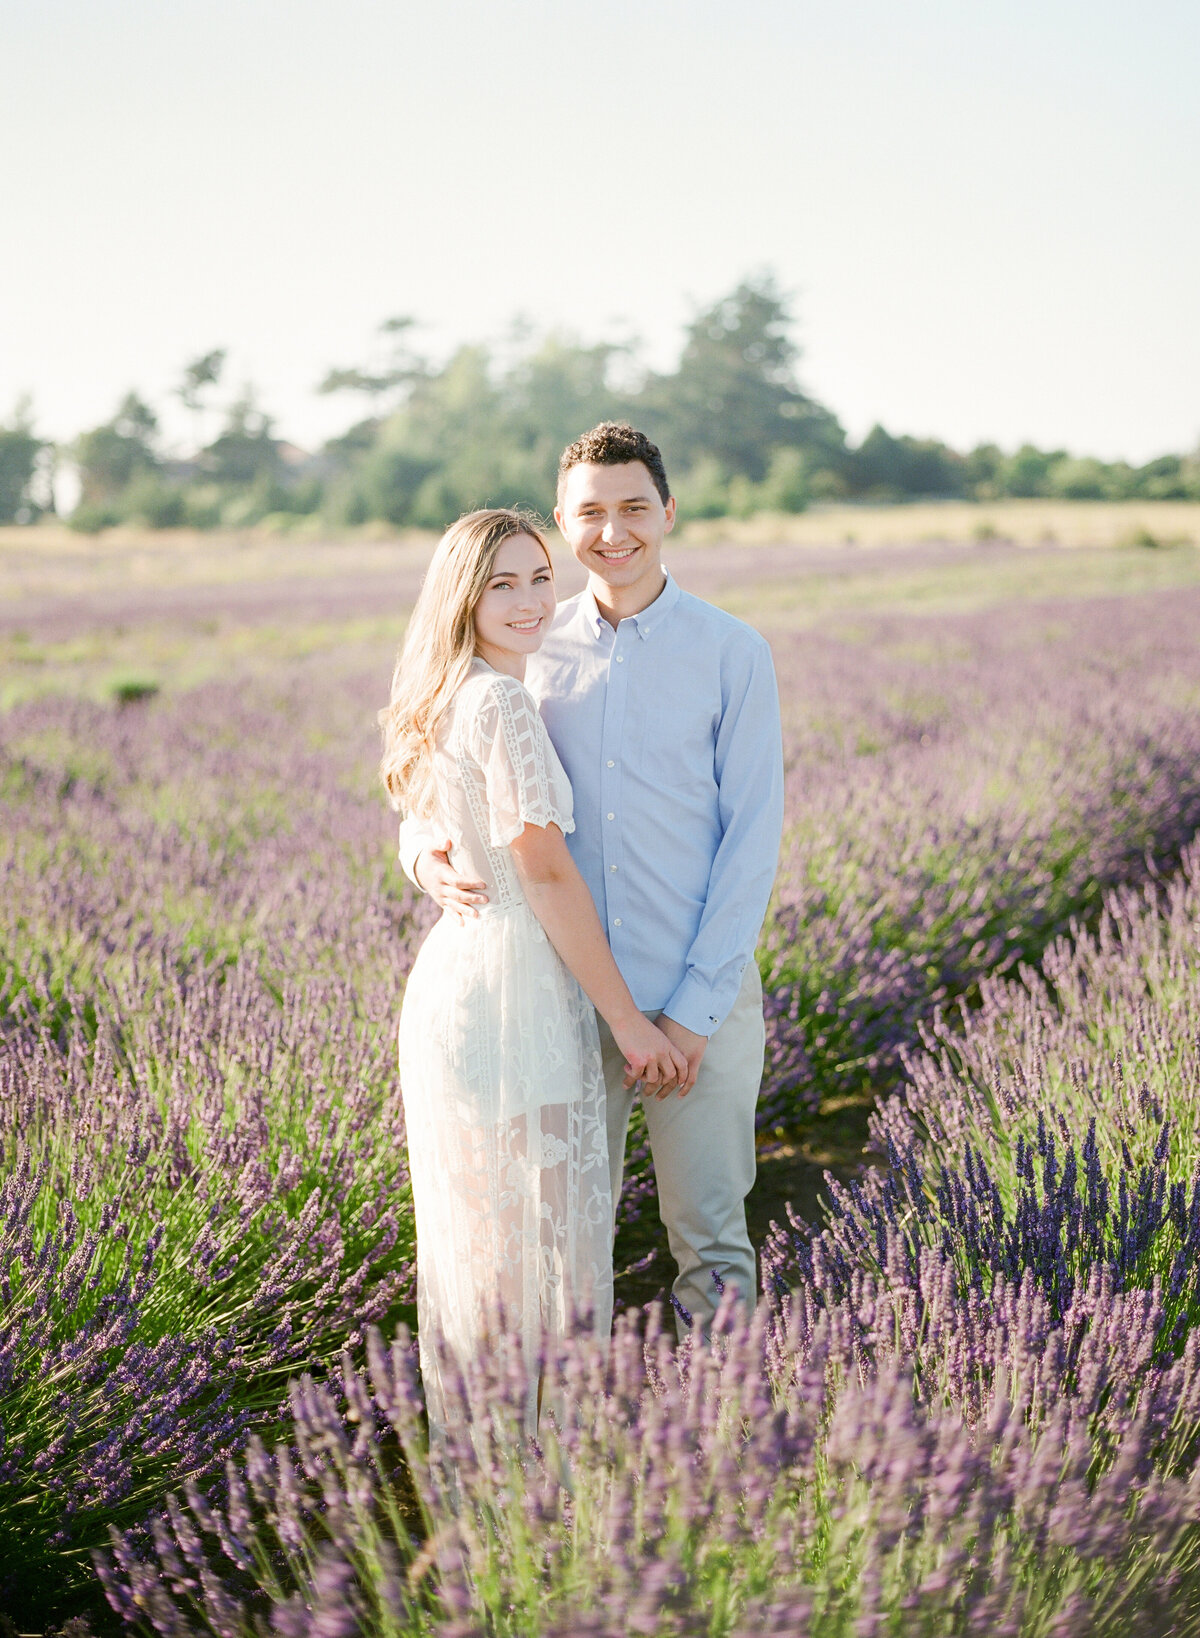 Ellise & Robert - Engagement Session - Tetiana Photography-24